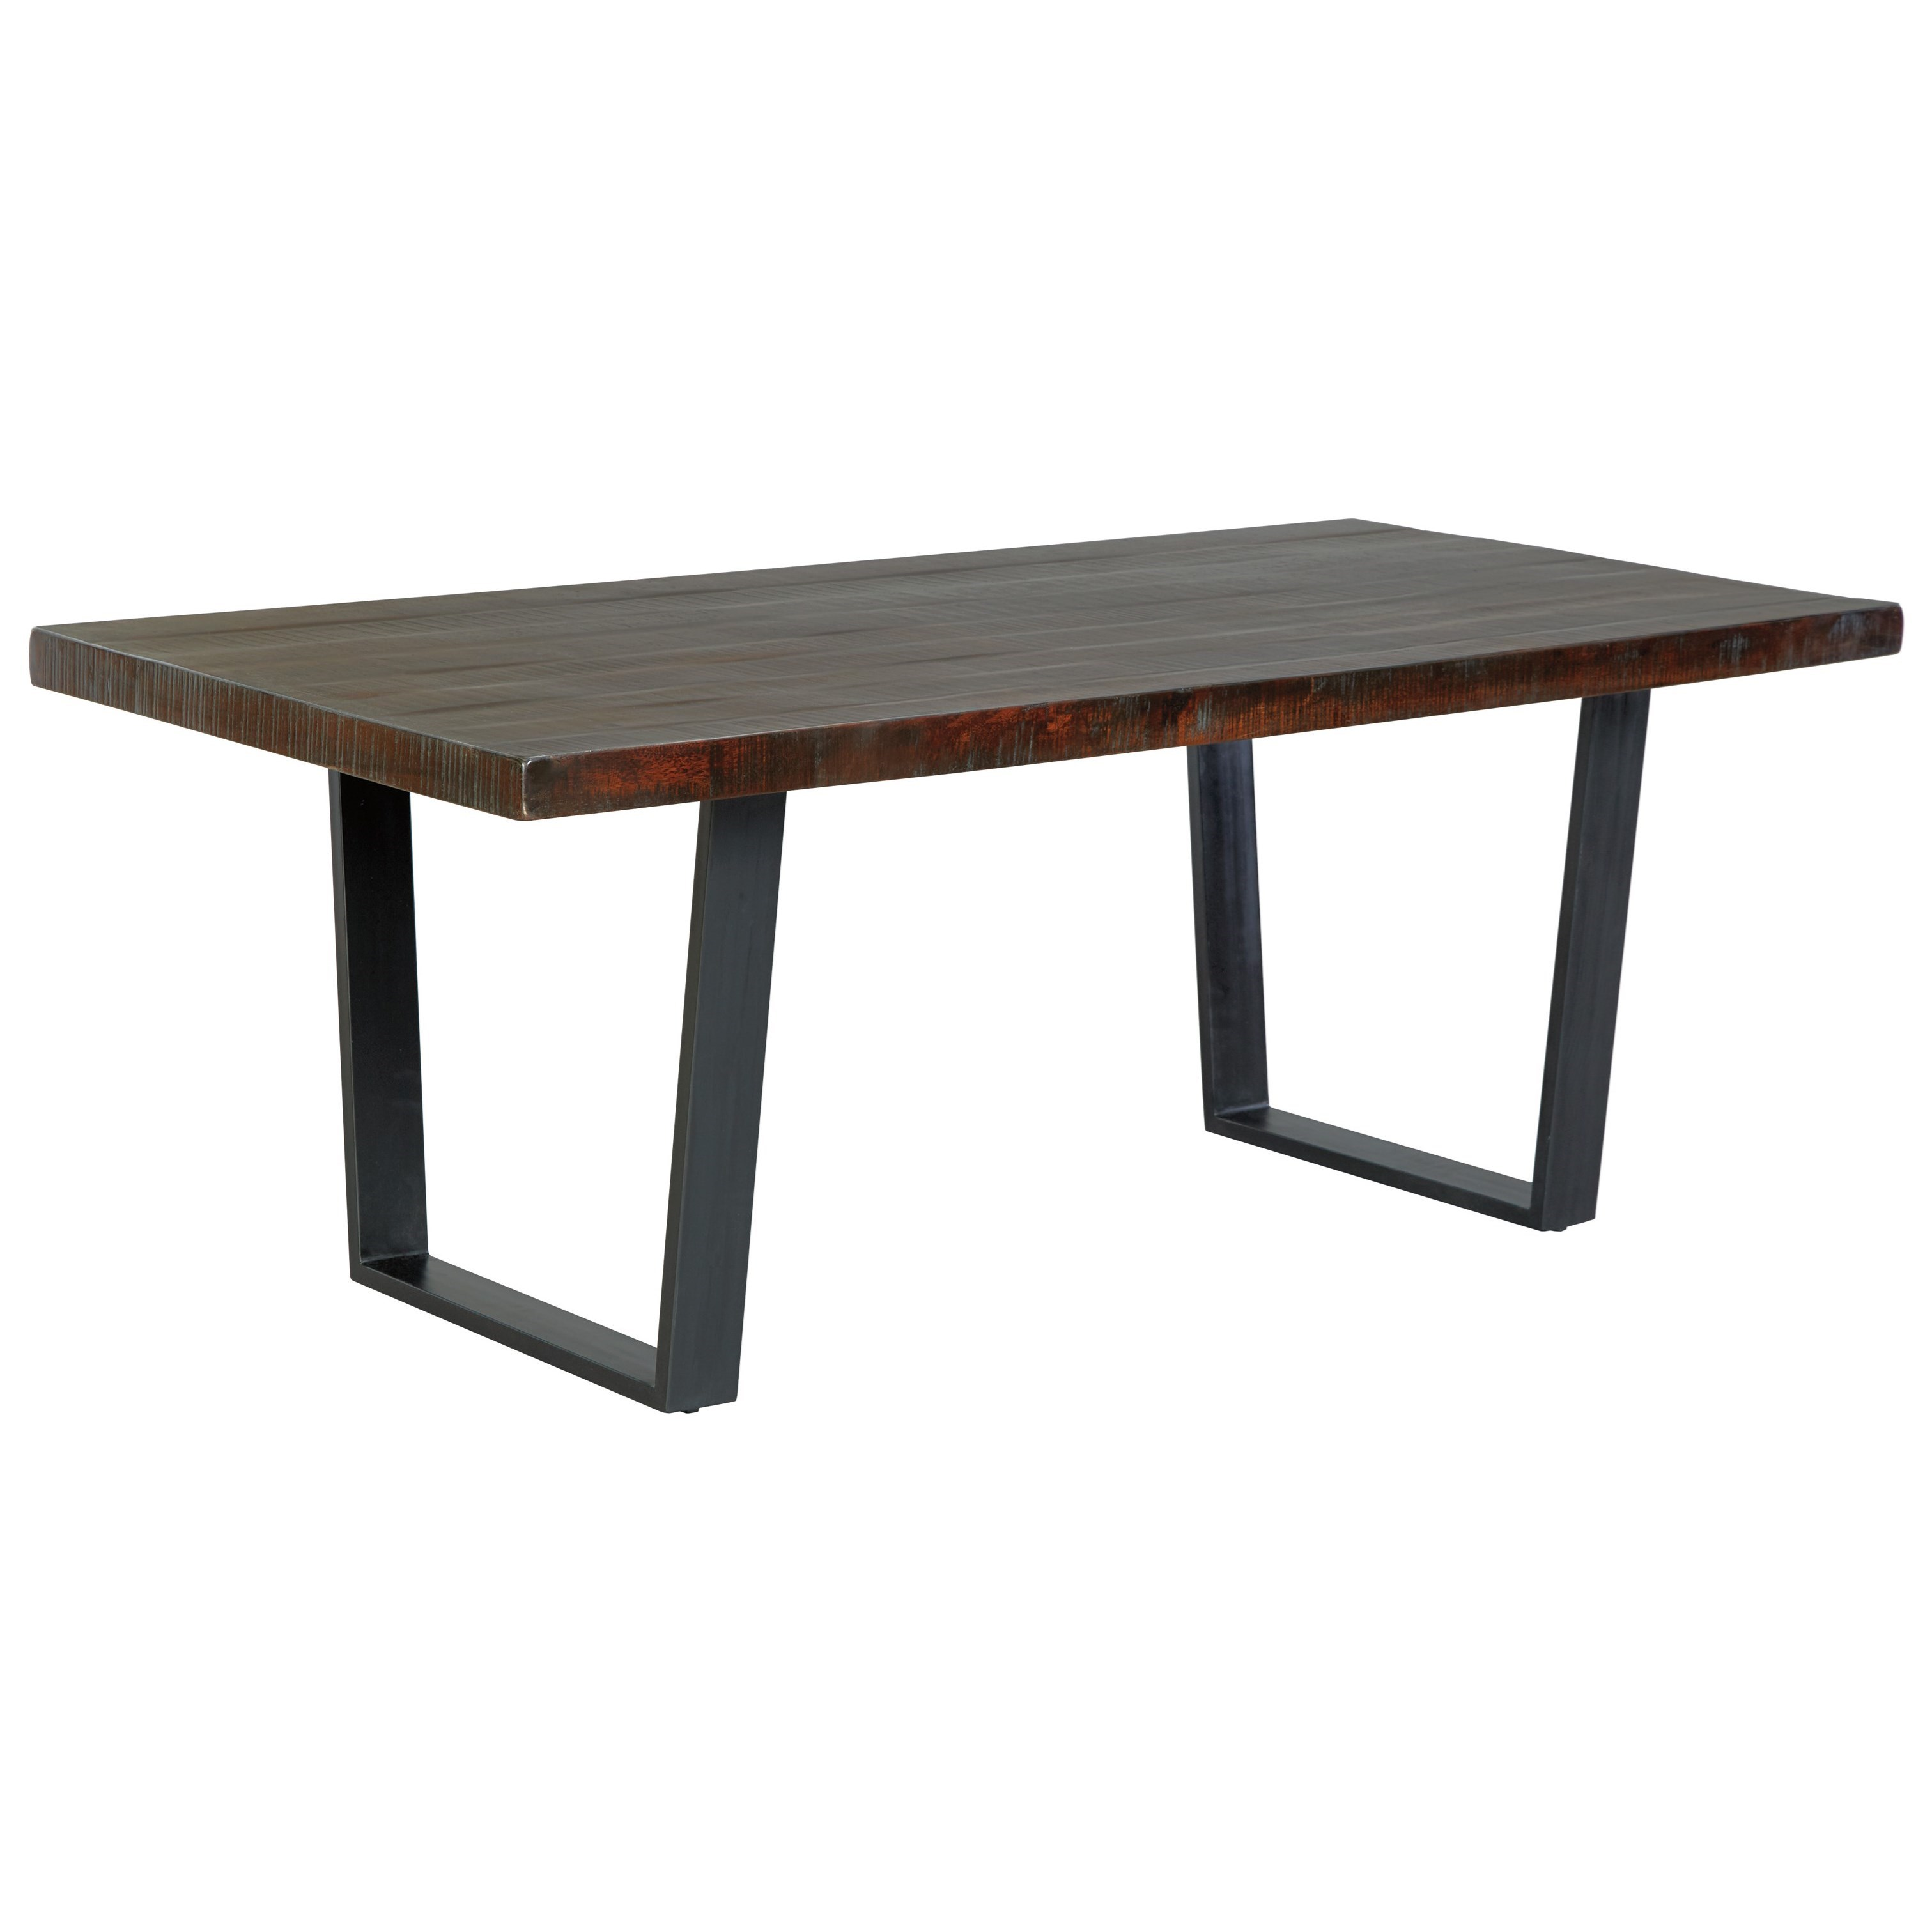 Ashley signature design parlone d721 25 modern rustic for Rustic modern dining room table